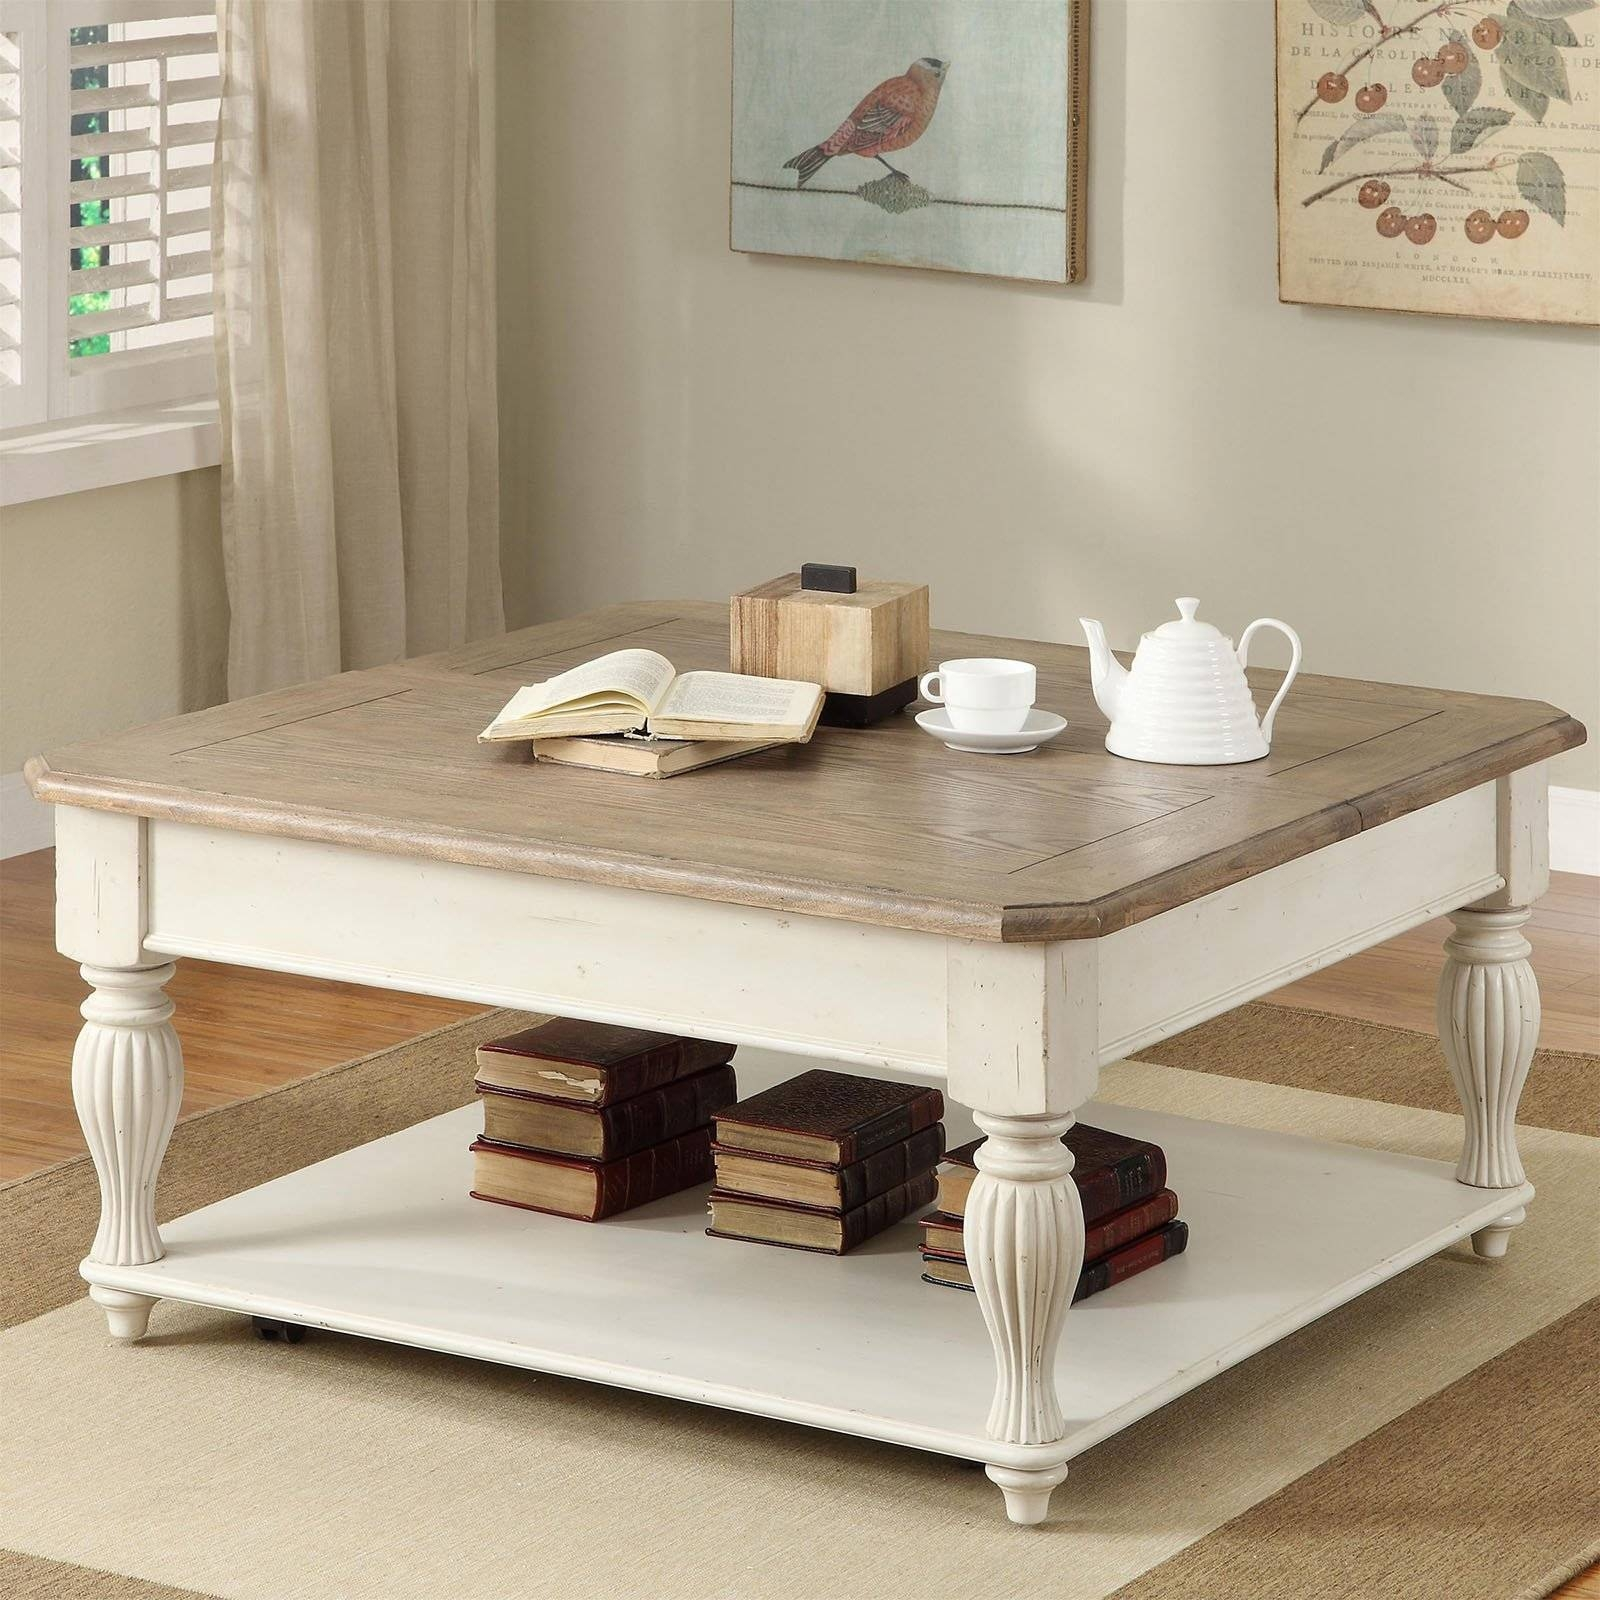 White Coffee Table Furniture | Coffee Tables Decoration with regard to White Coffee Tables With Storage (Image 24 of 30)